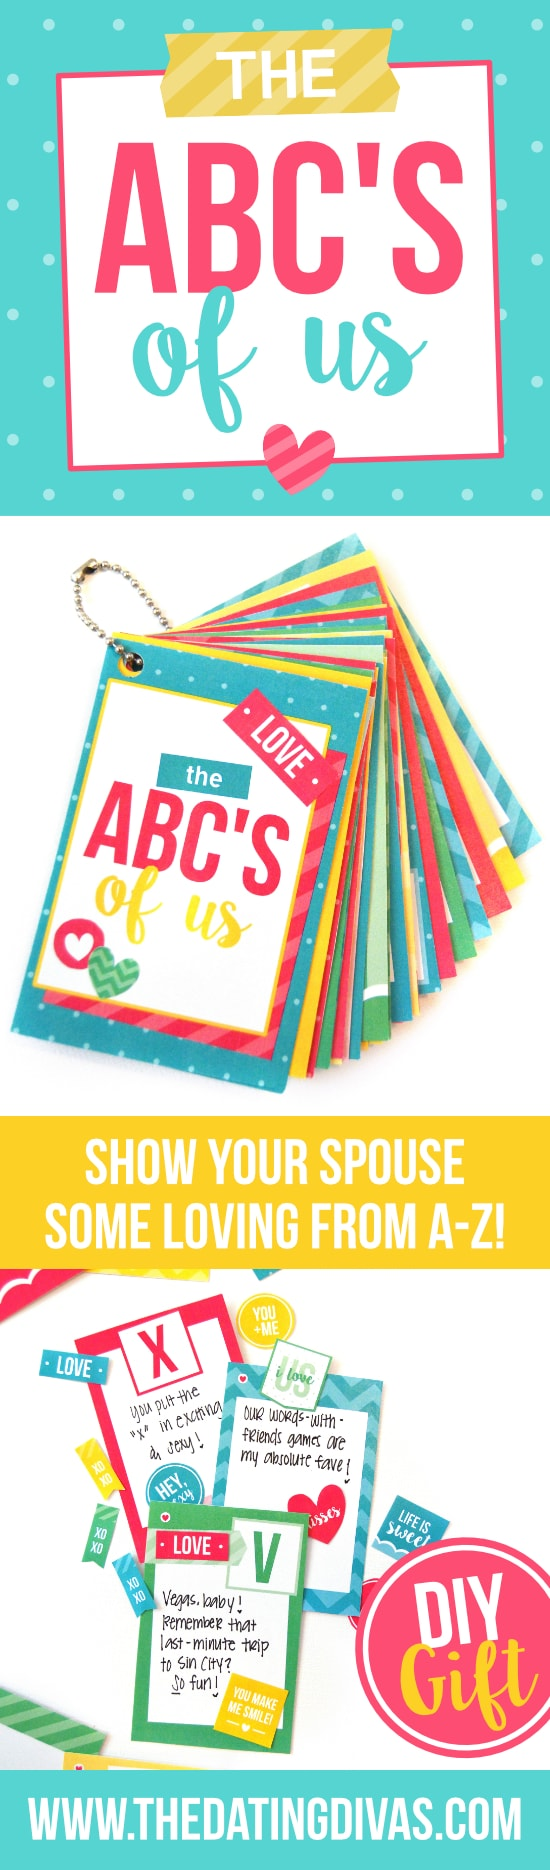 ABC's of Us DIY Gift